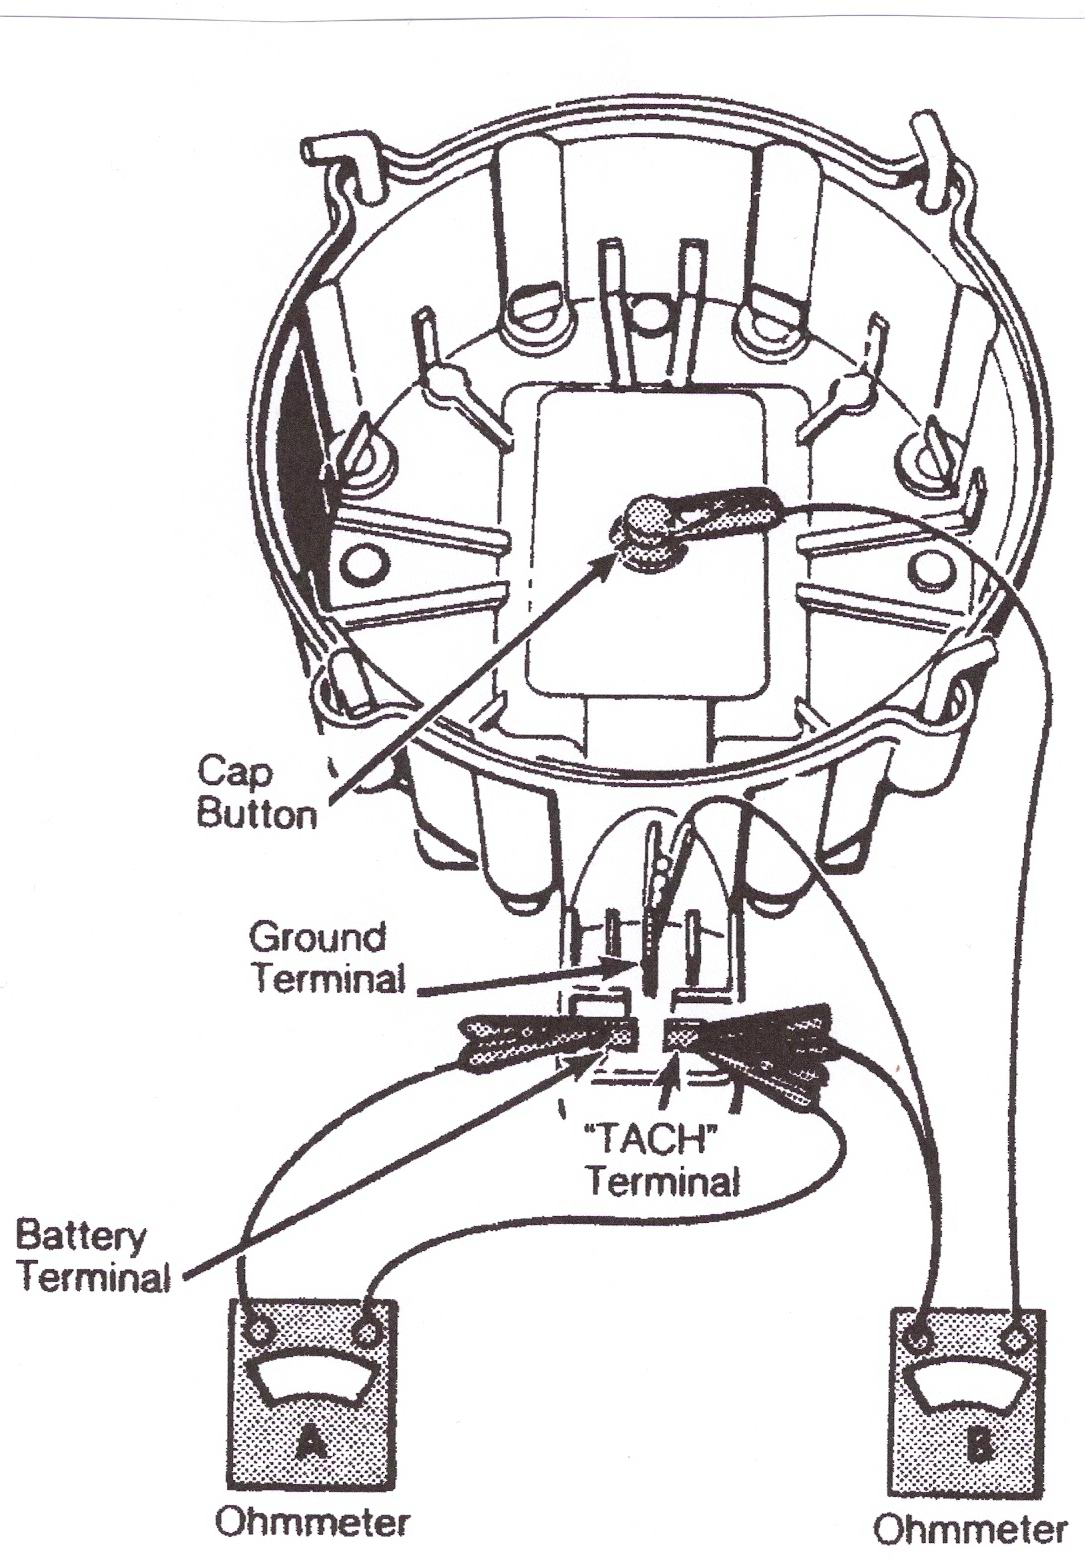 Gm Hei Distributor Wiring Diagram Additionally Chevy Hei Distributor